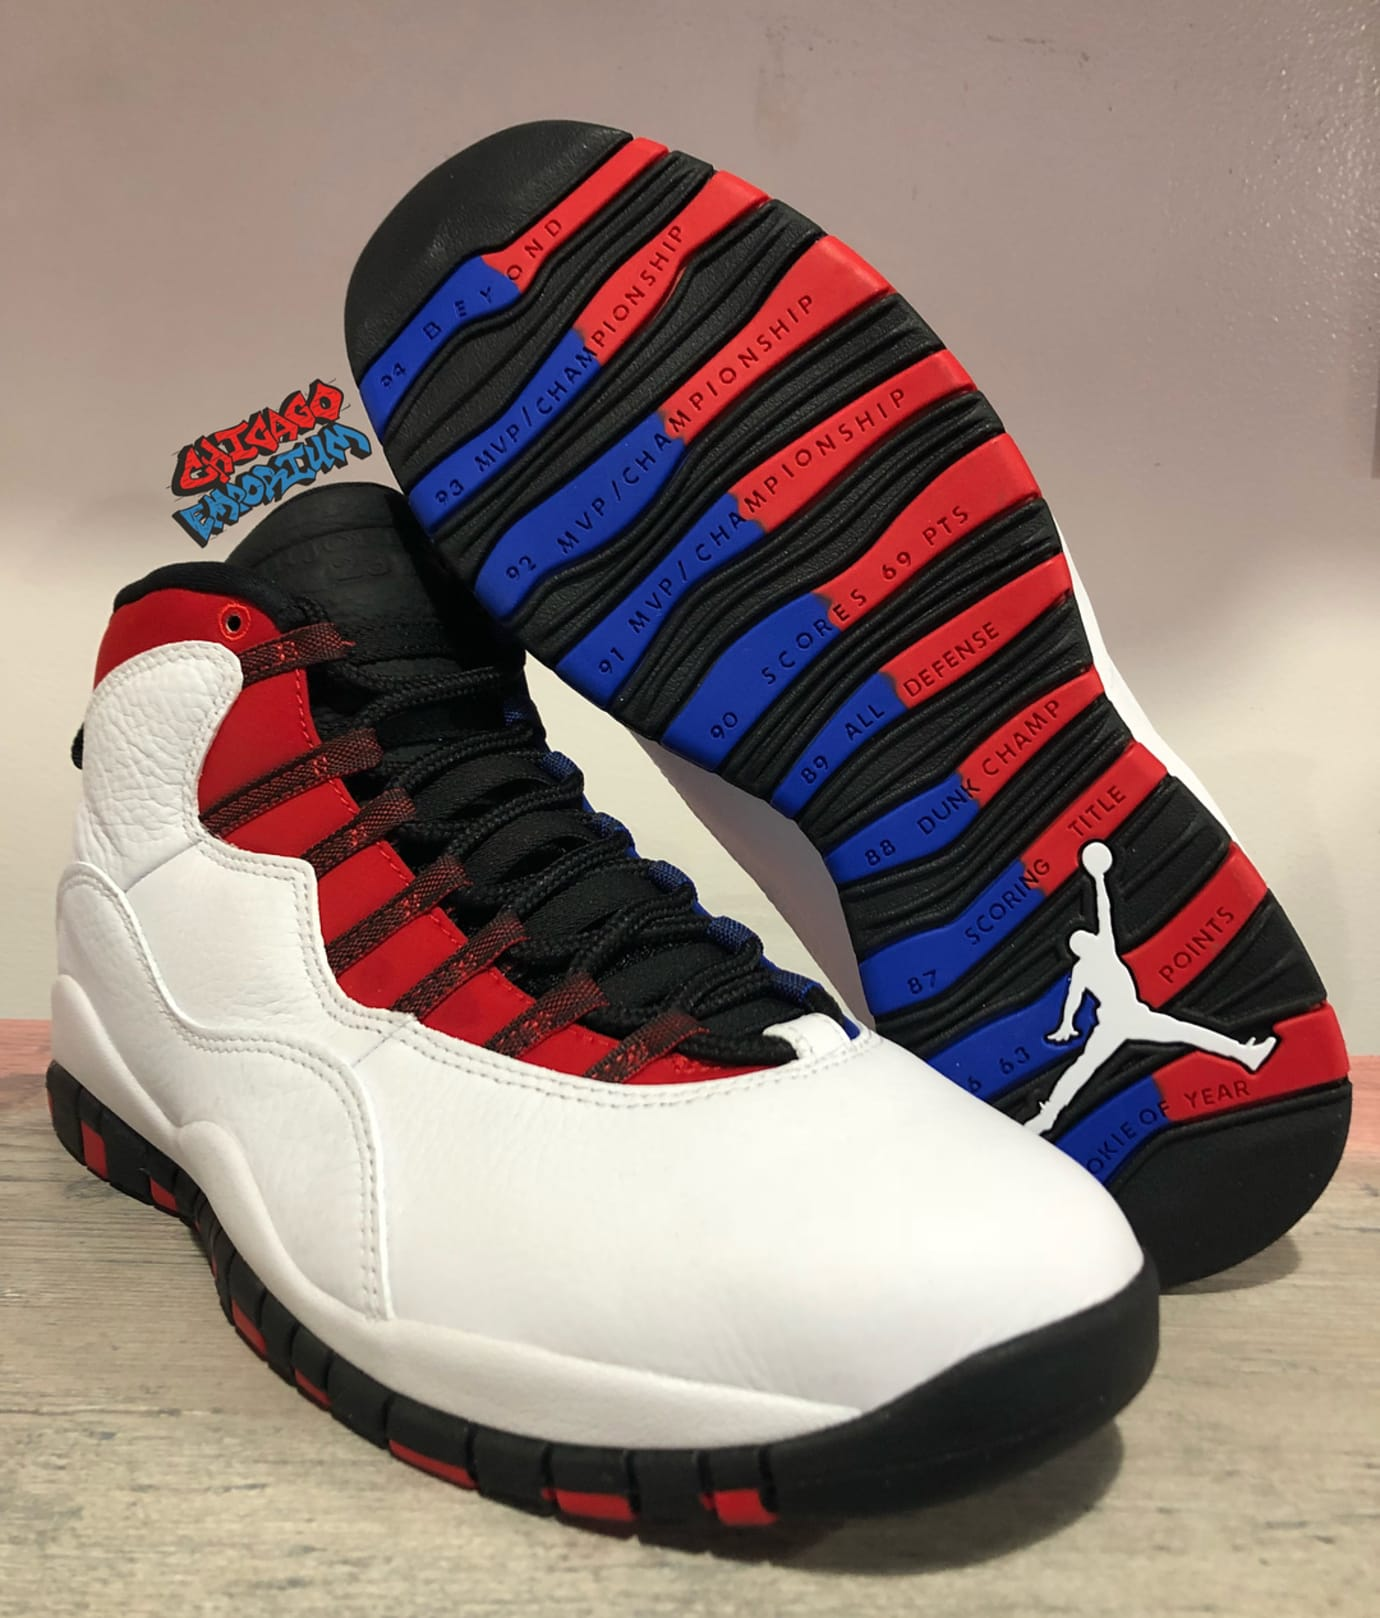 7e5c59bd0cc Image via Chicago Emporium · Air Jordan 10 X Westbrook Olympians Release  Date Left Sole